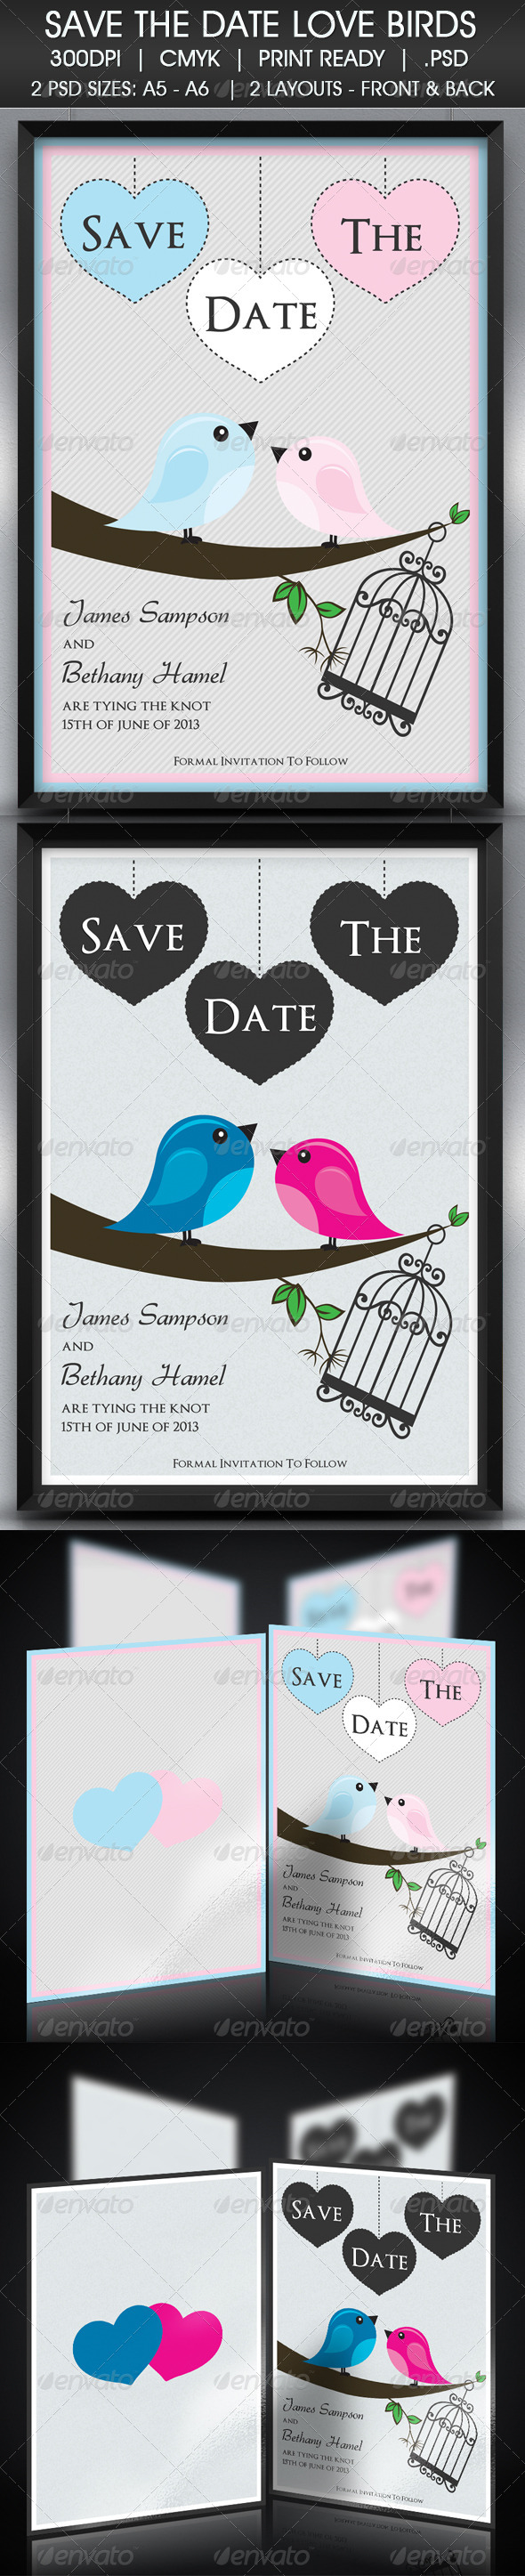 Love Birds Save The Date - Cards & Invites Print Templates